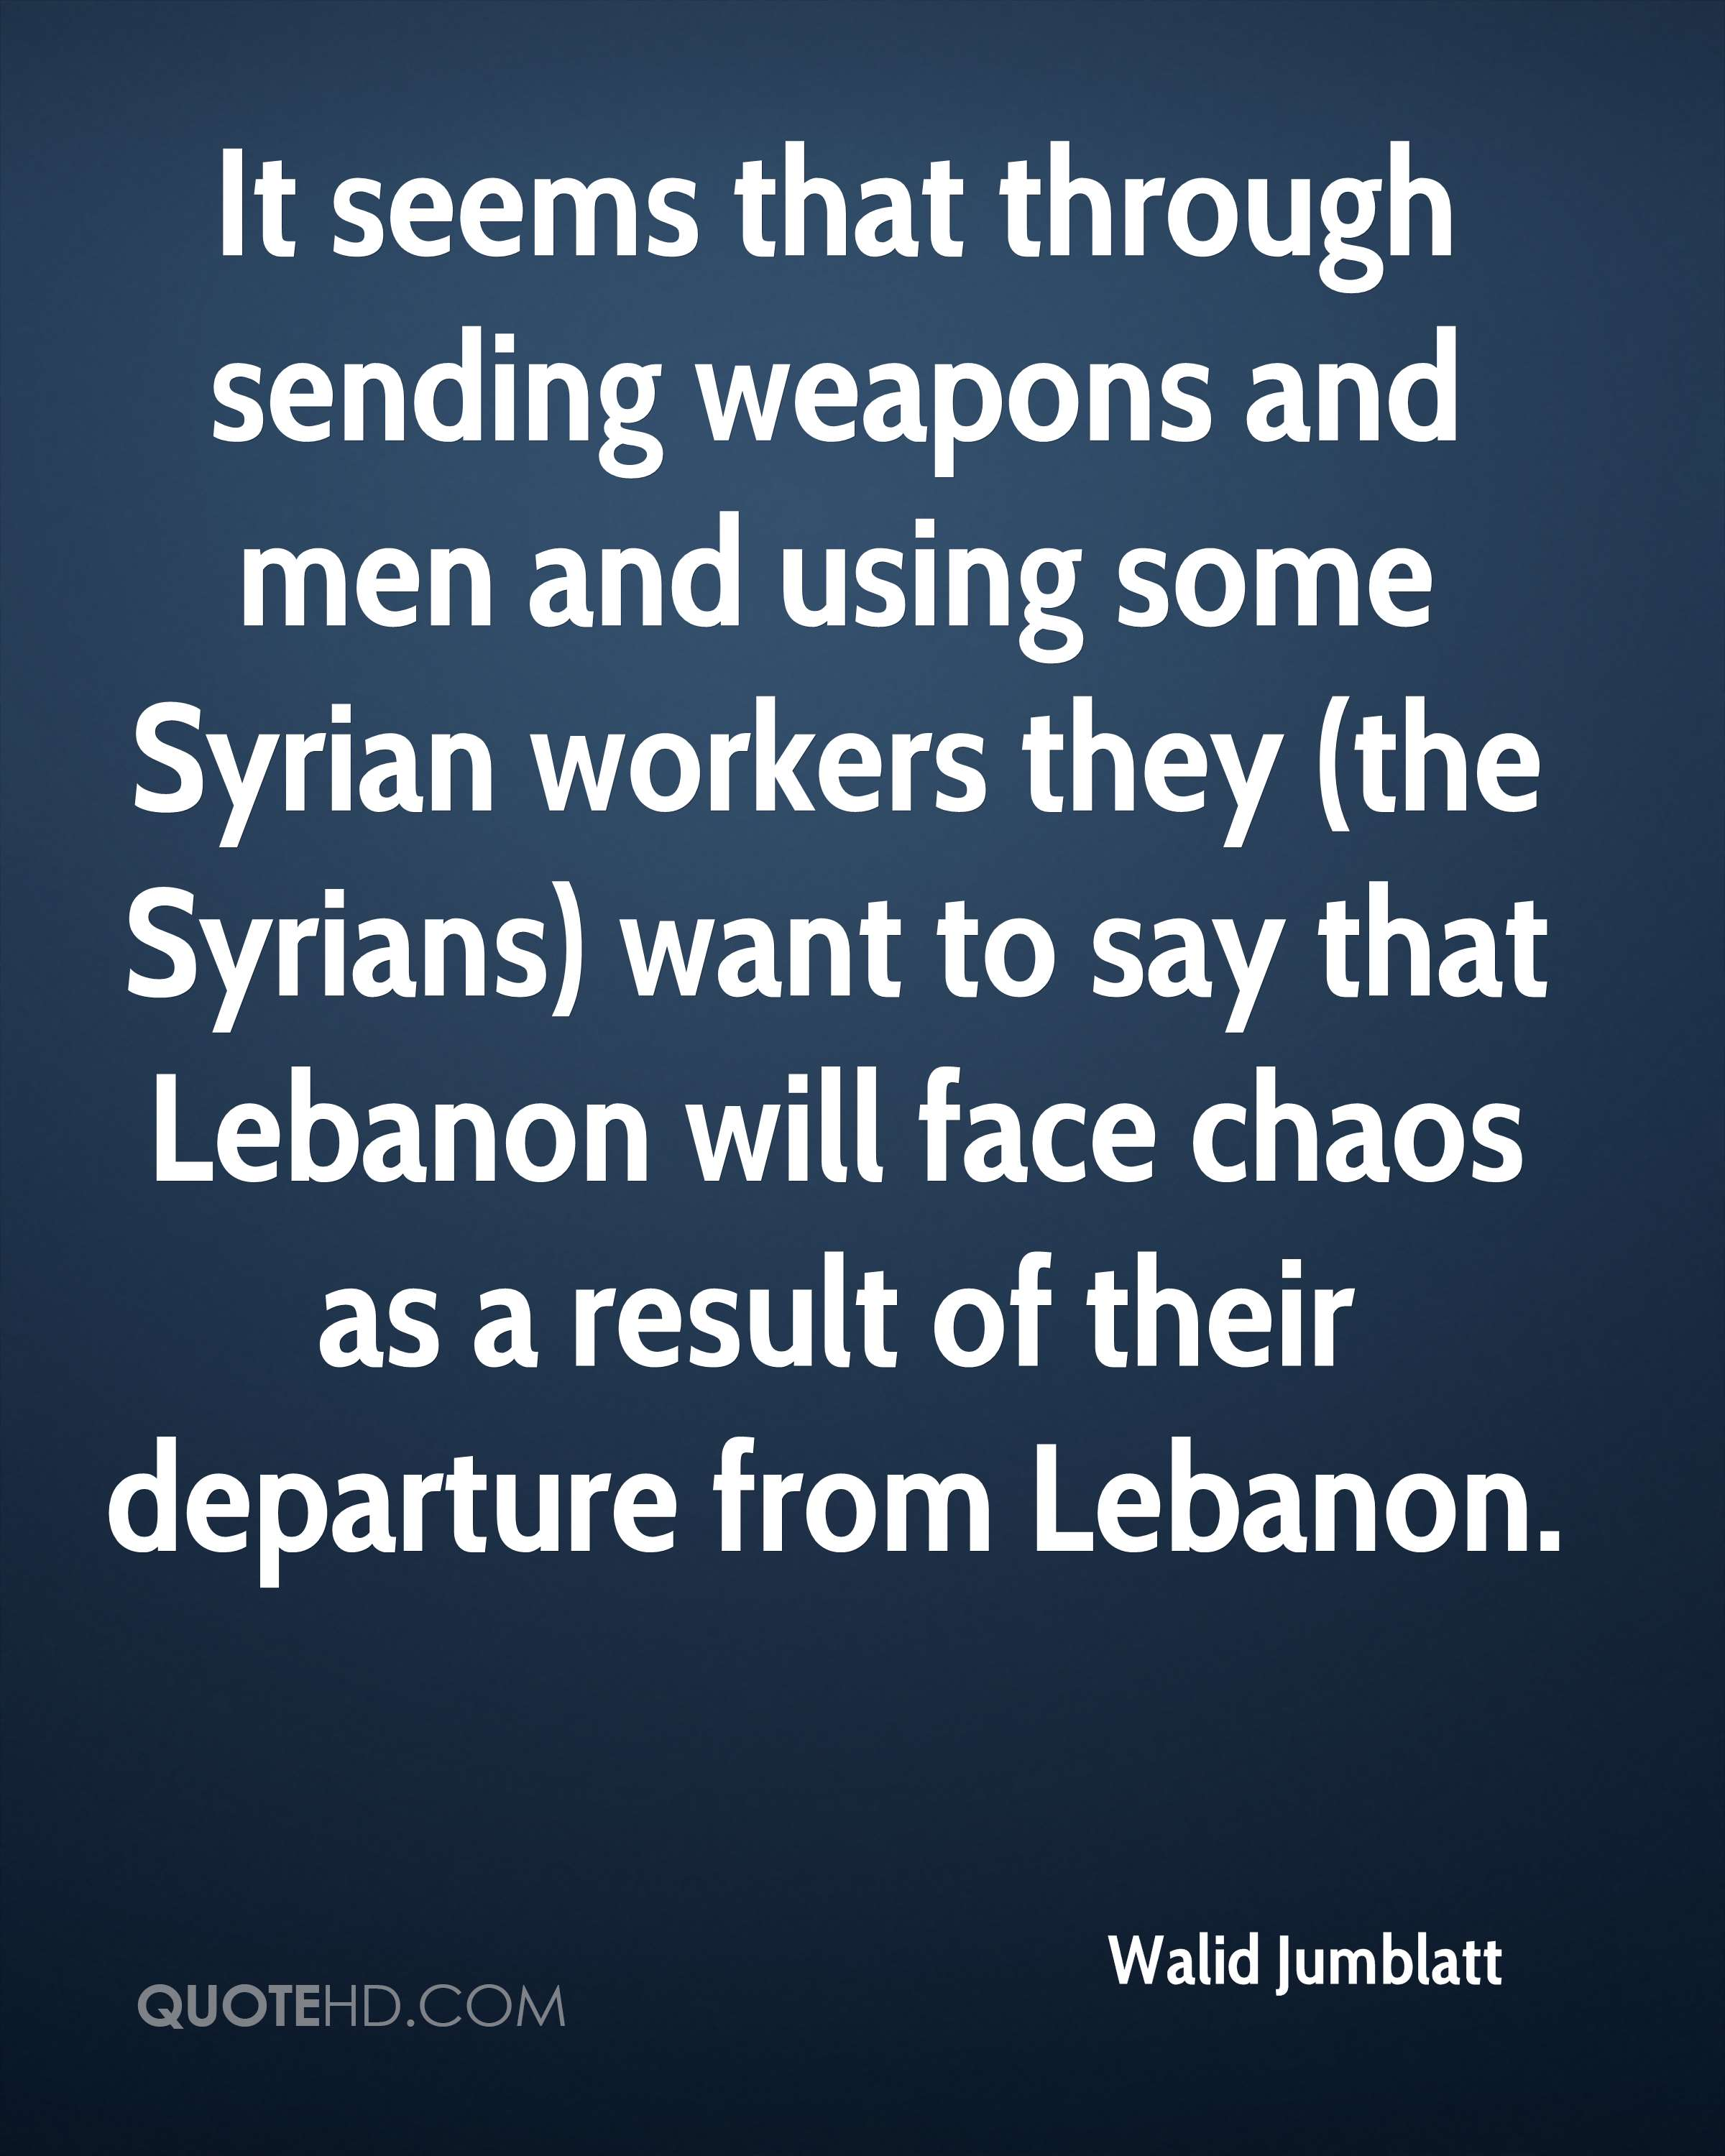 It seems that through sending weapons and men and using some Syrian workers they (the Syrians) want to say that Lebanon will face chaos as a result of their departure from Lebanon.